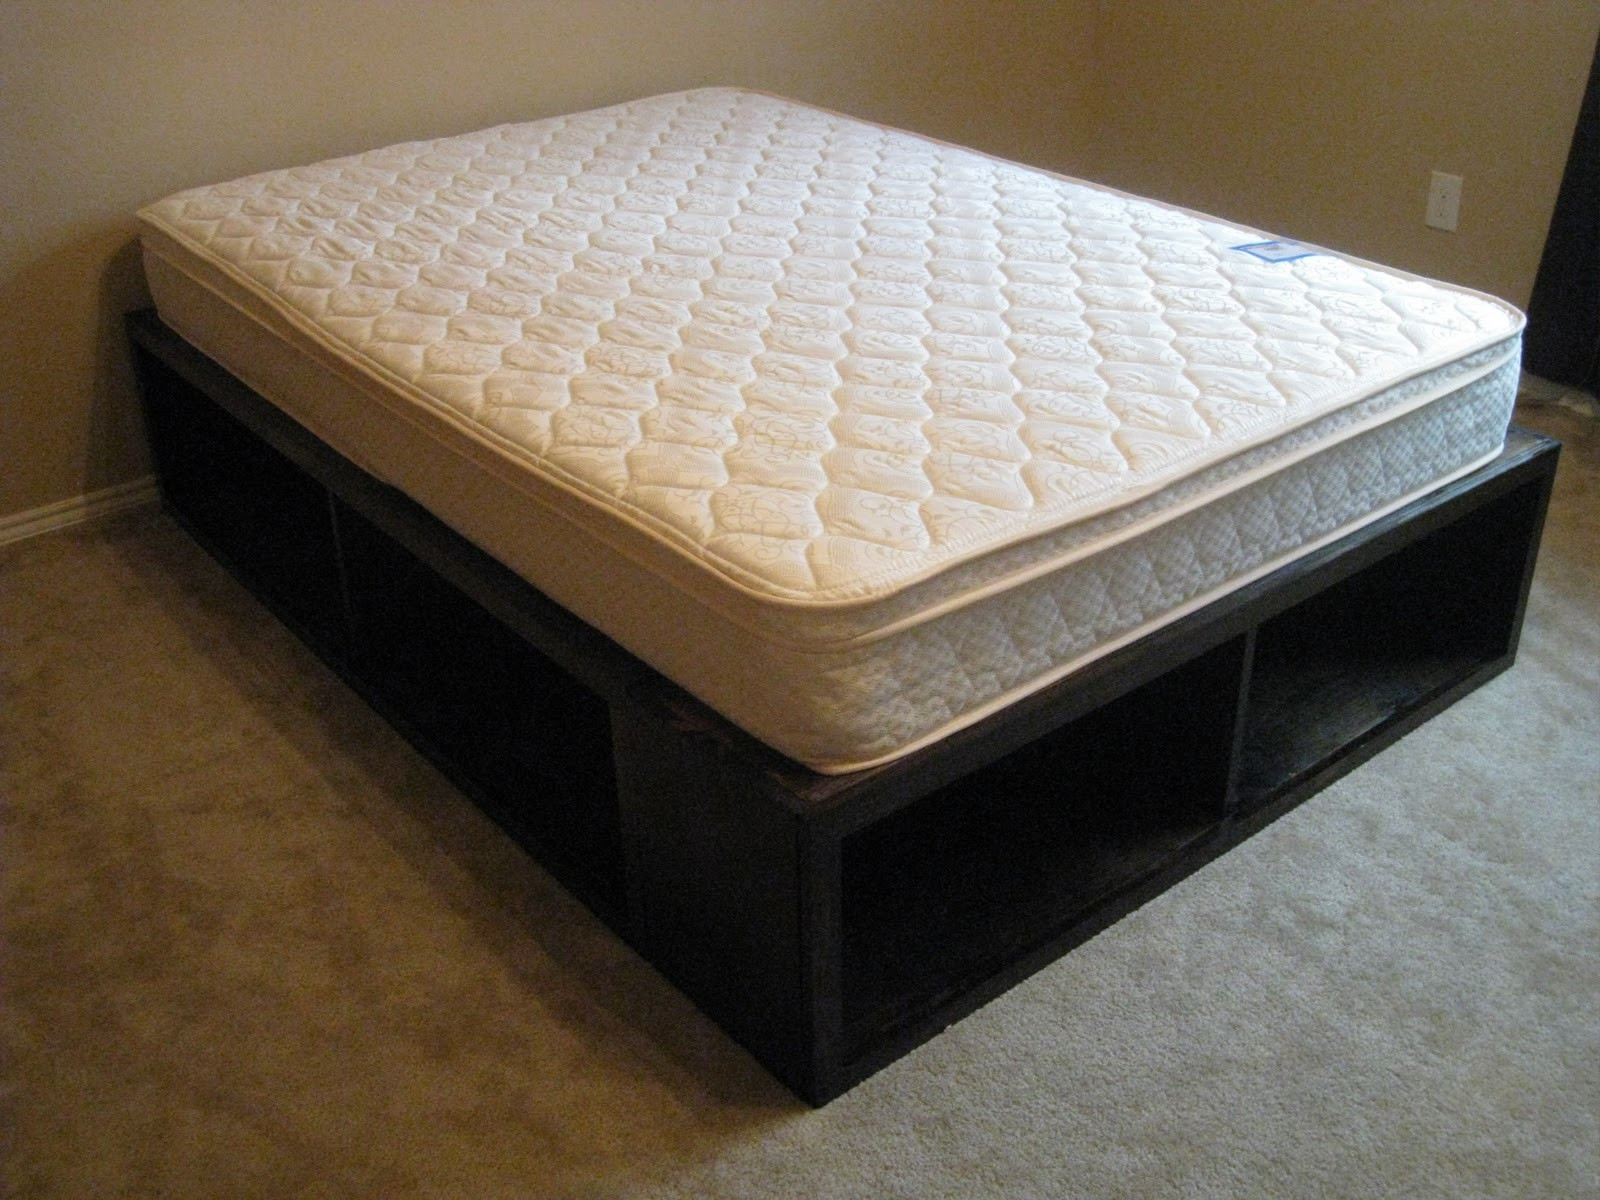 Best ideas about Storage Beds DIY . Save or Pin DIY Full Storage Bed Shanty 2 Chic Now.